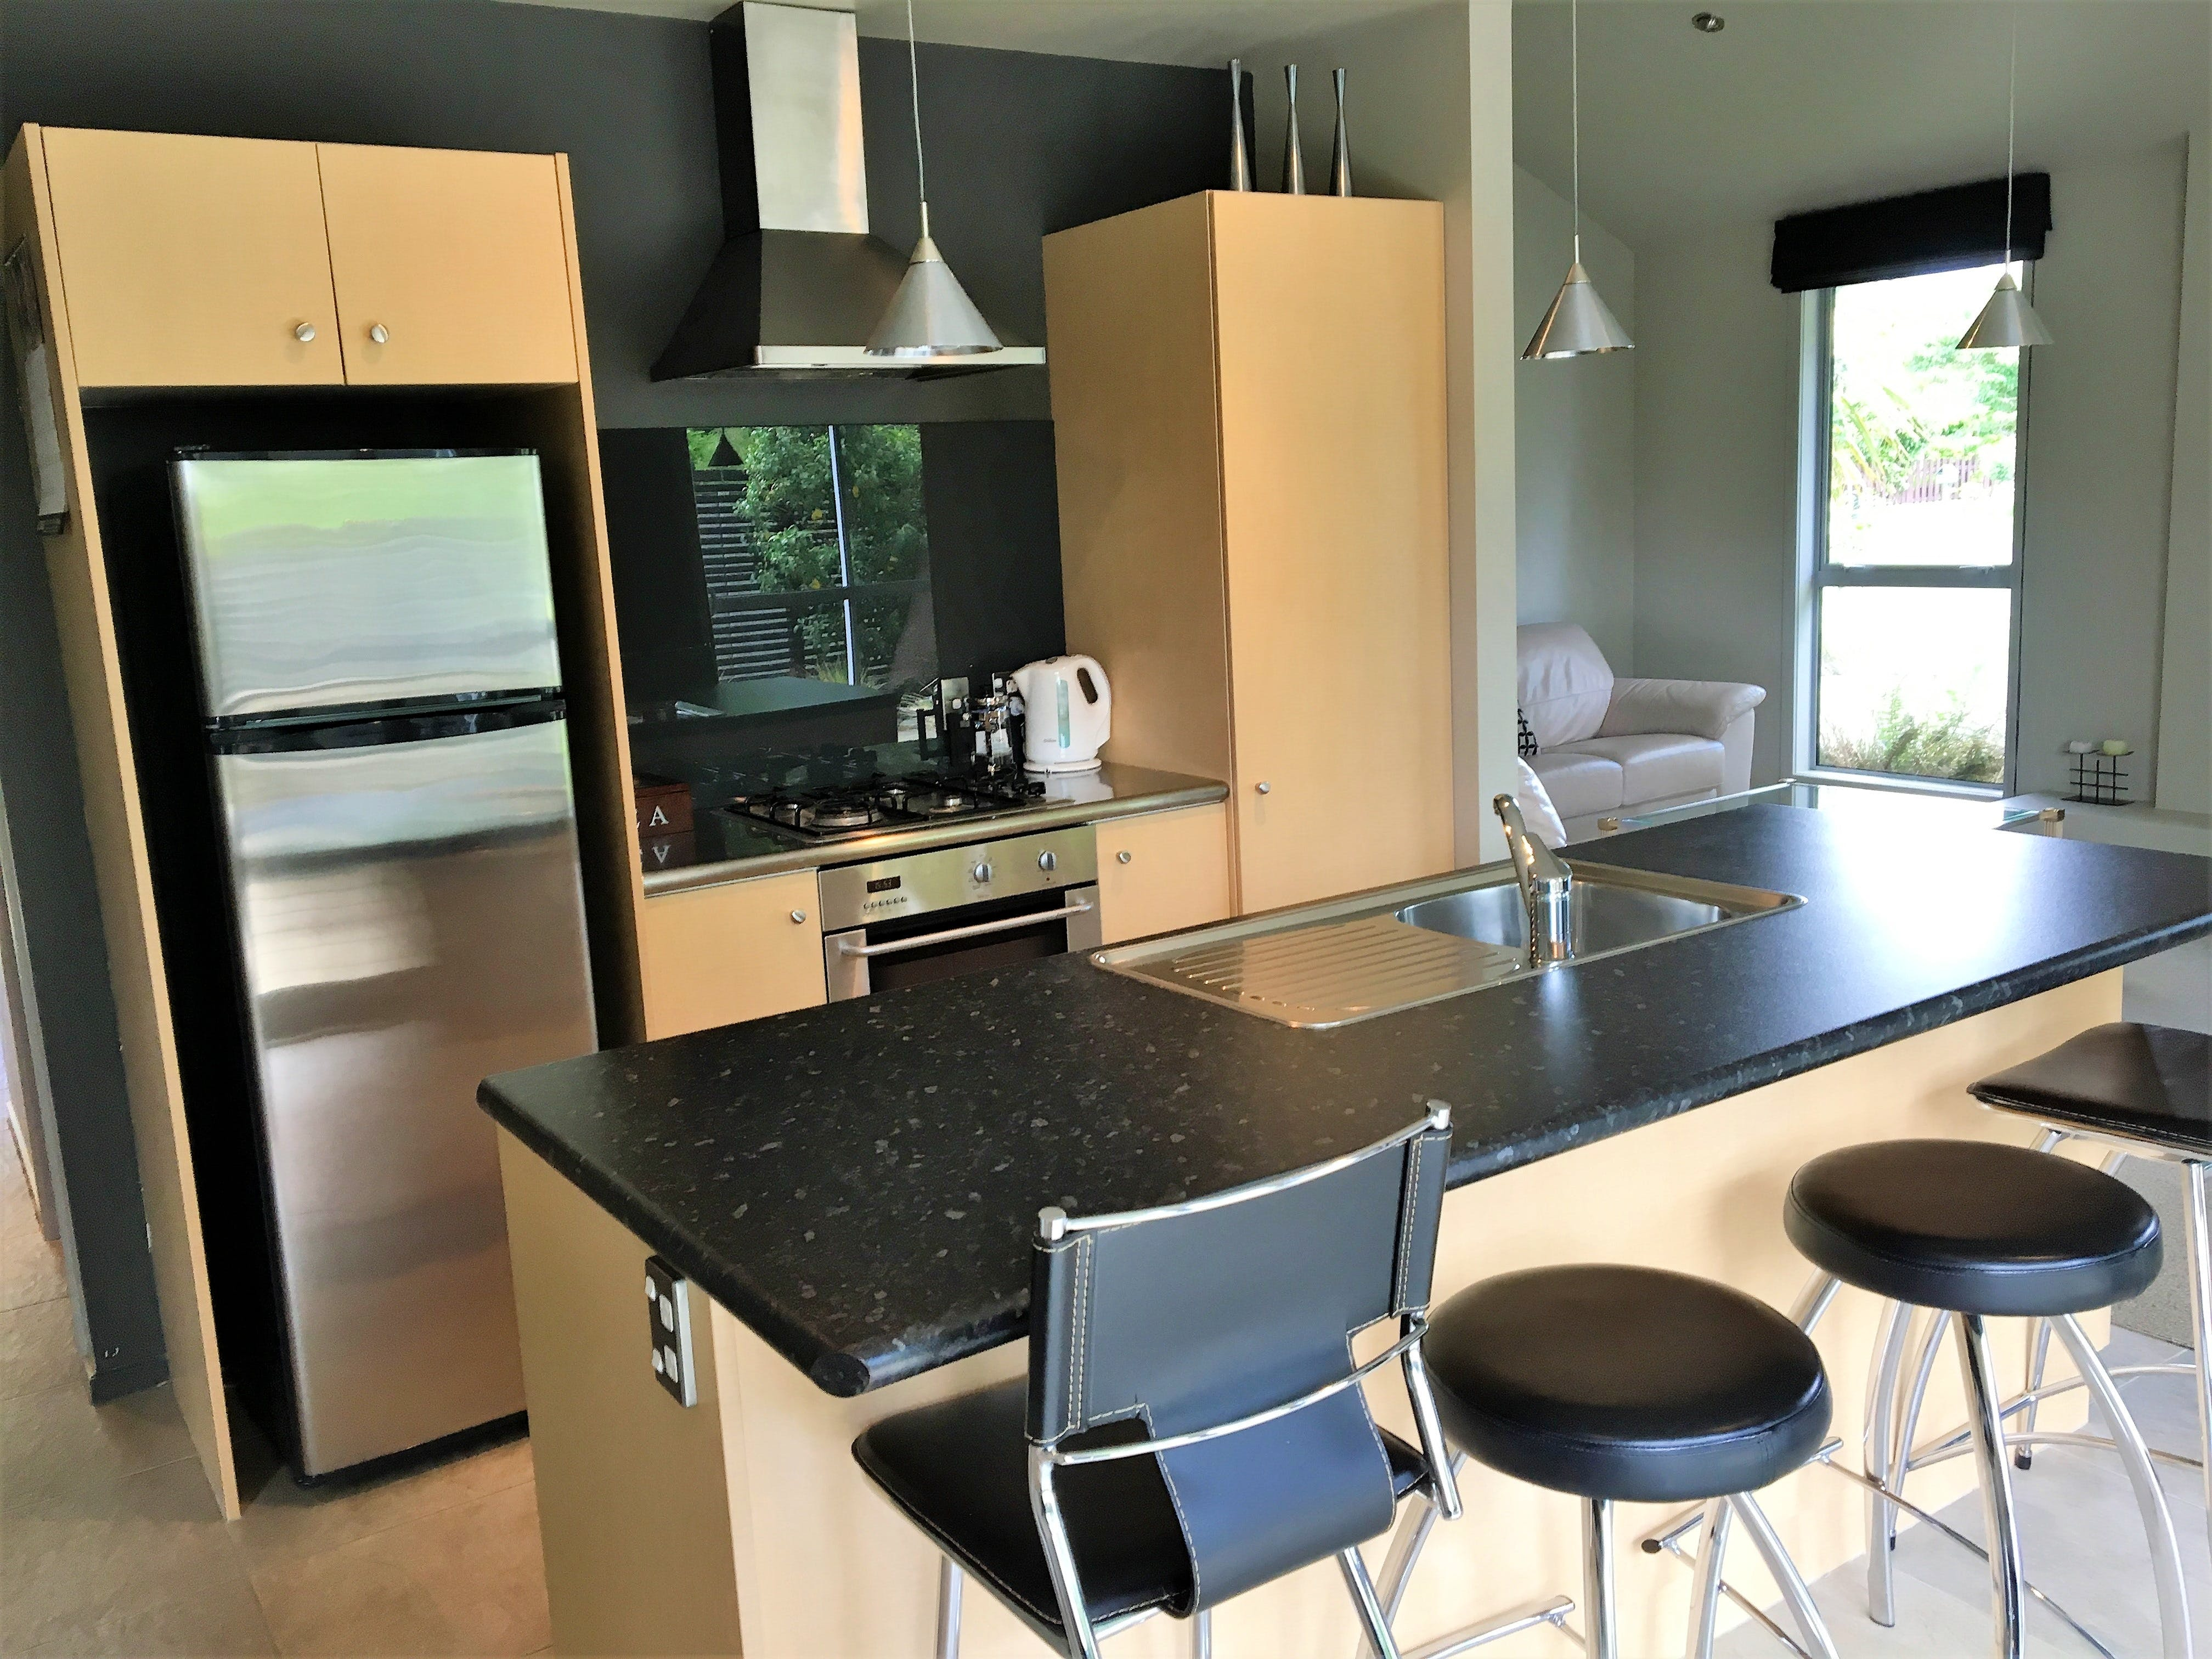 3 bedroom townhouse kitchen